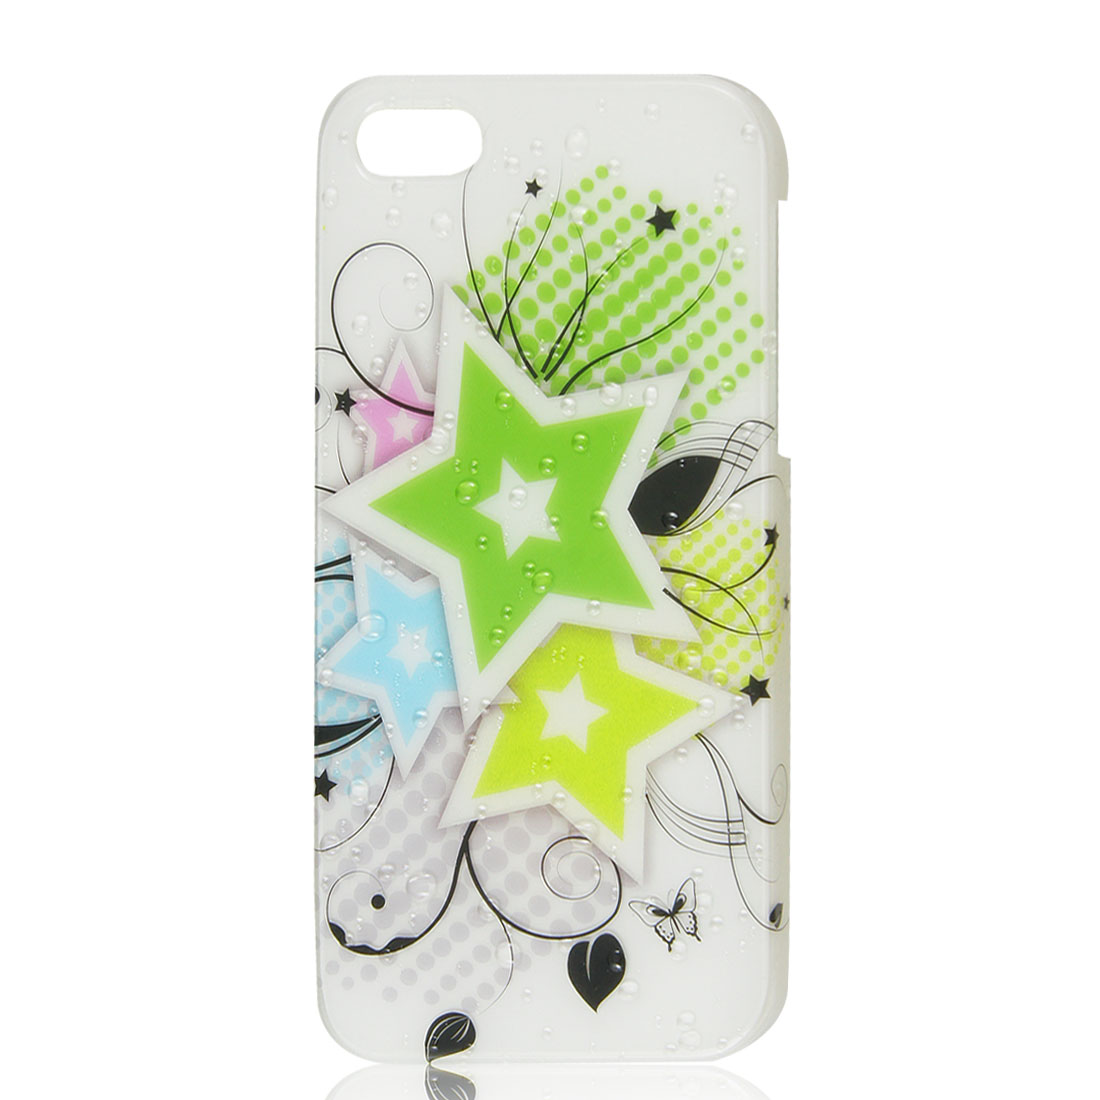 Colorful Star Hard Back Case Cover for iPhone 5 5G 3D Water-drop Design